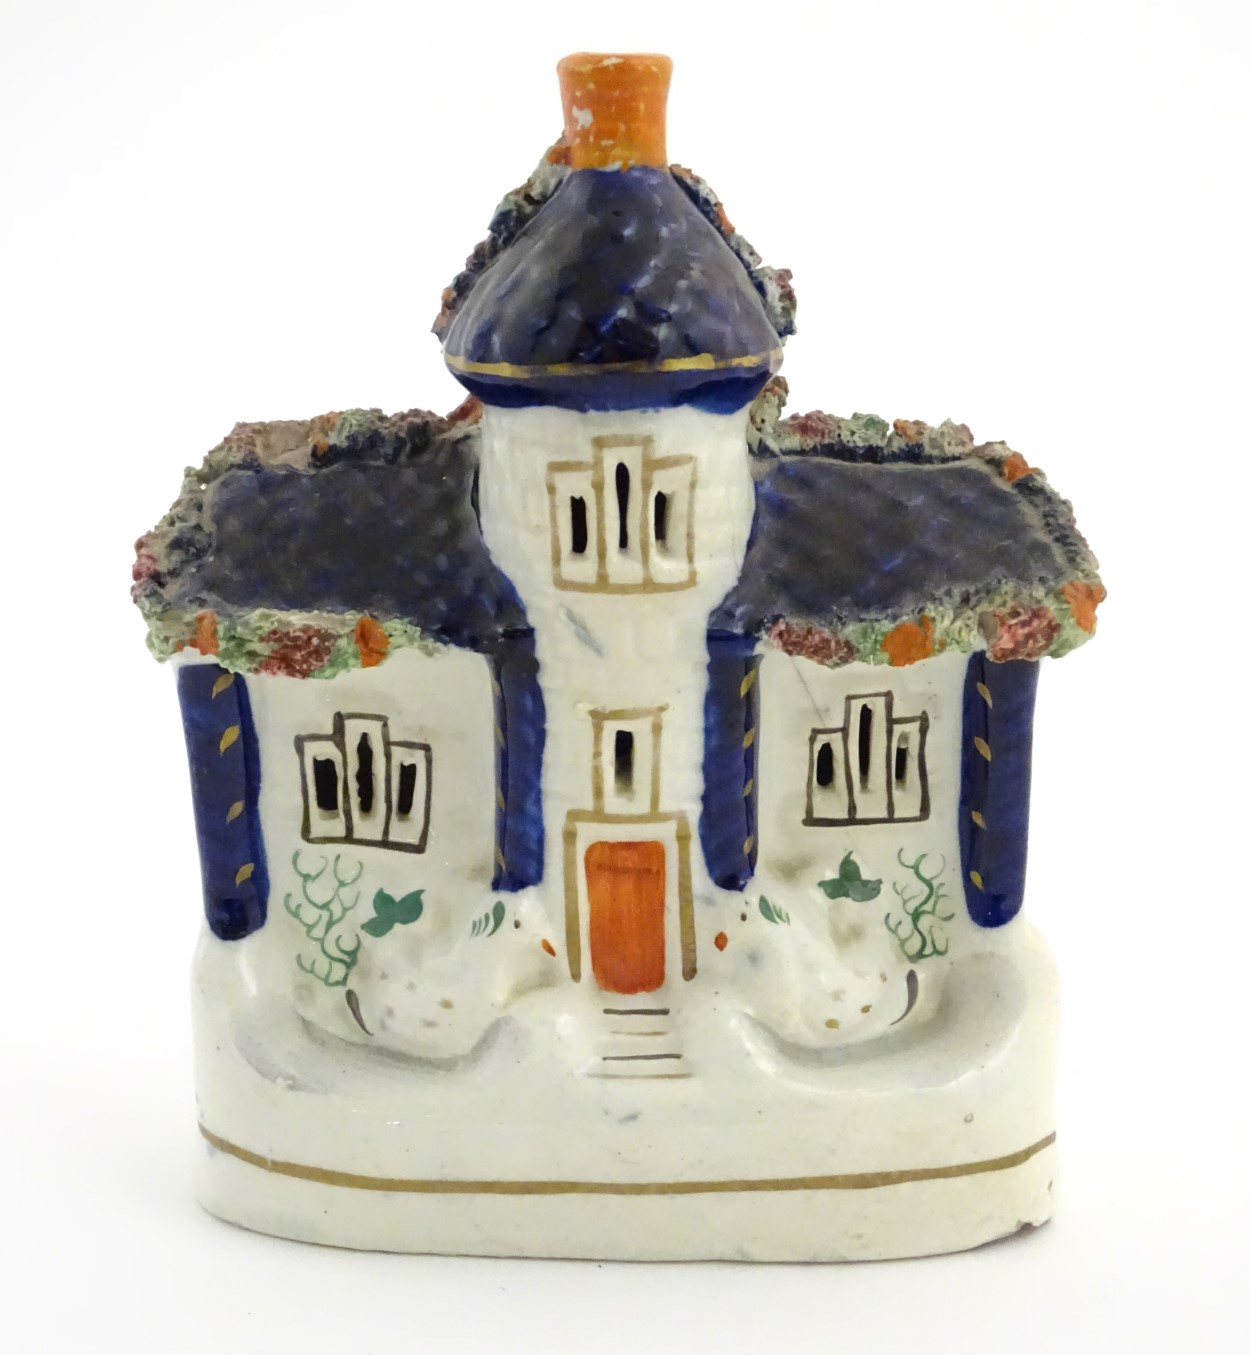 "Lot 48 - A Staffordshire pottery model of a flat back house. Approx. 6 1/2"" tall x 4 1/2"" wide."